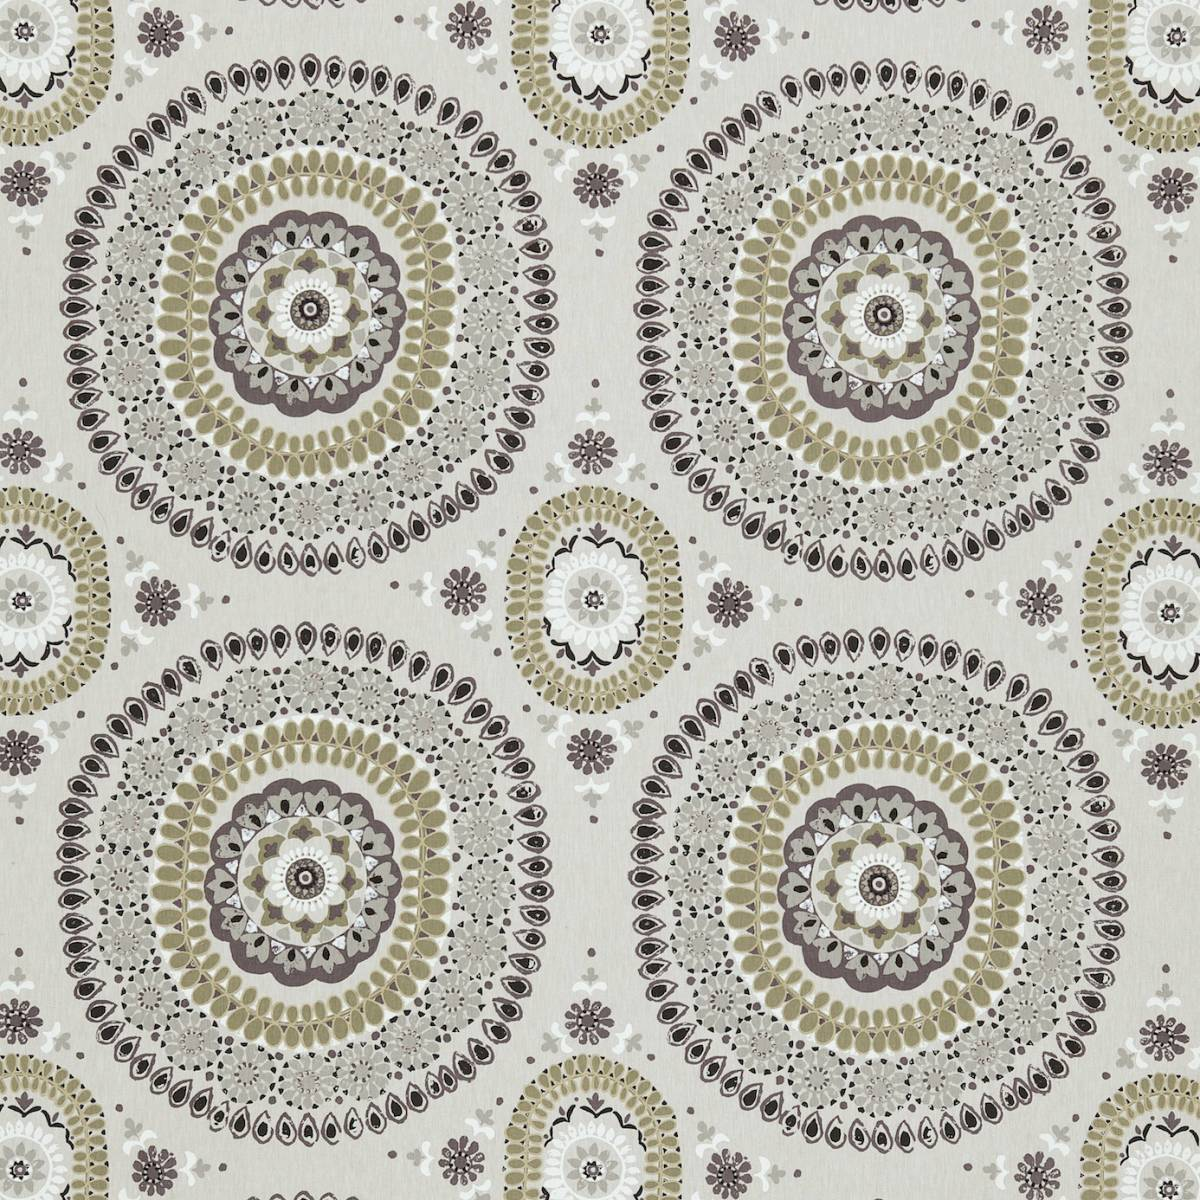 Boheme Fabric - Ochre/Slate (131090) - Harlequin Jardin Boheme Fabrics Collection